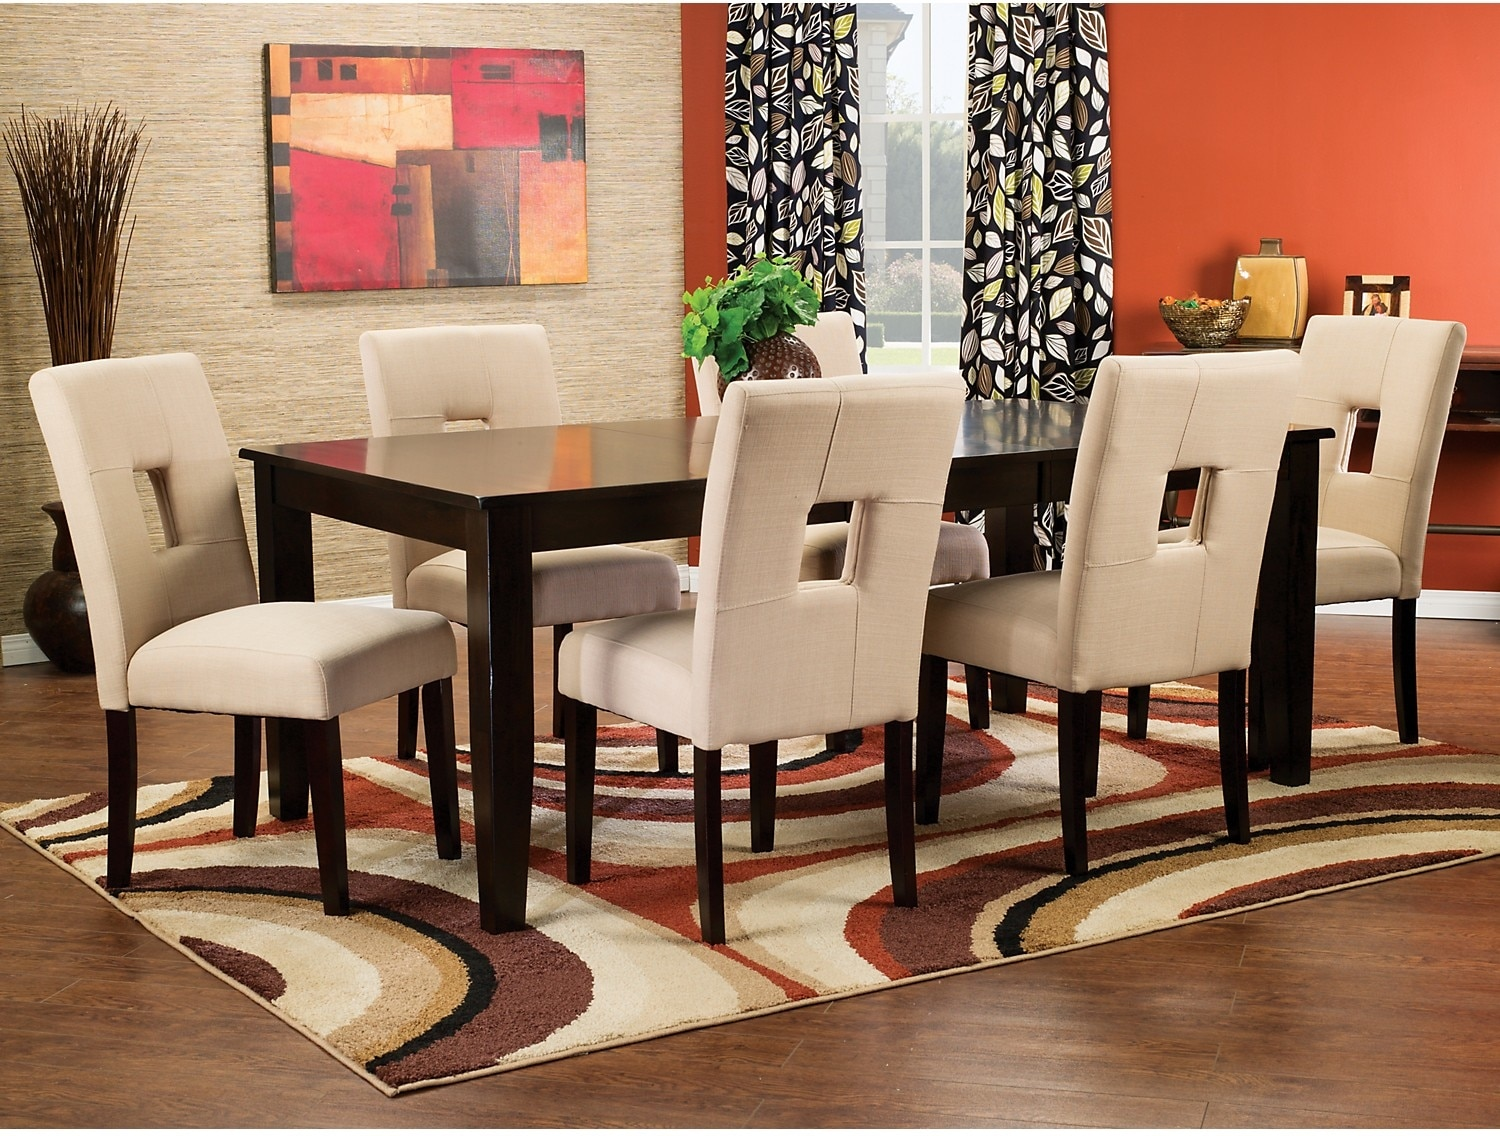 Dakota 8-Piece Dining Package with Beige Chairs